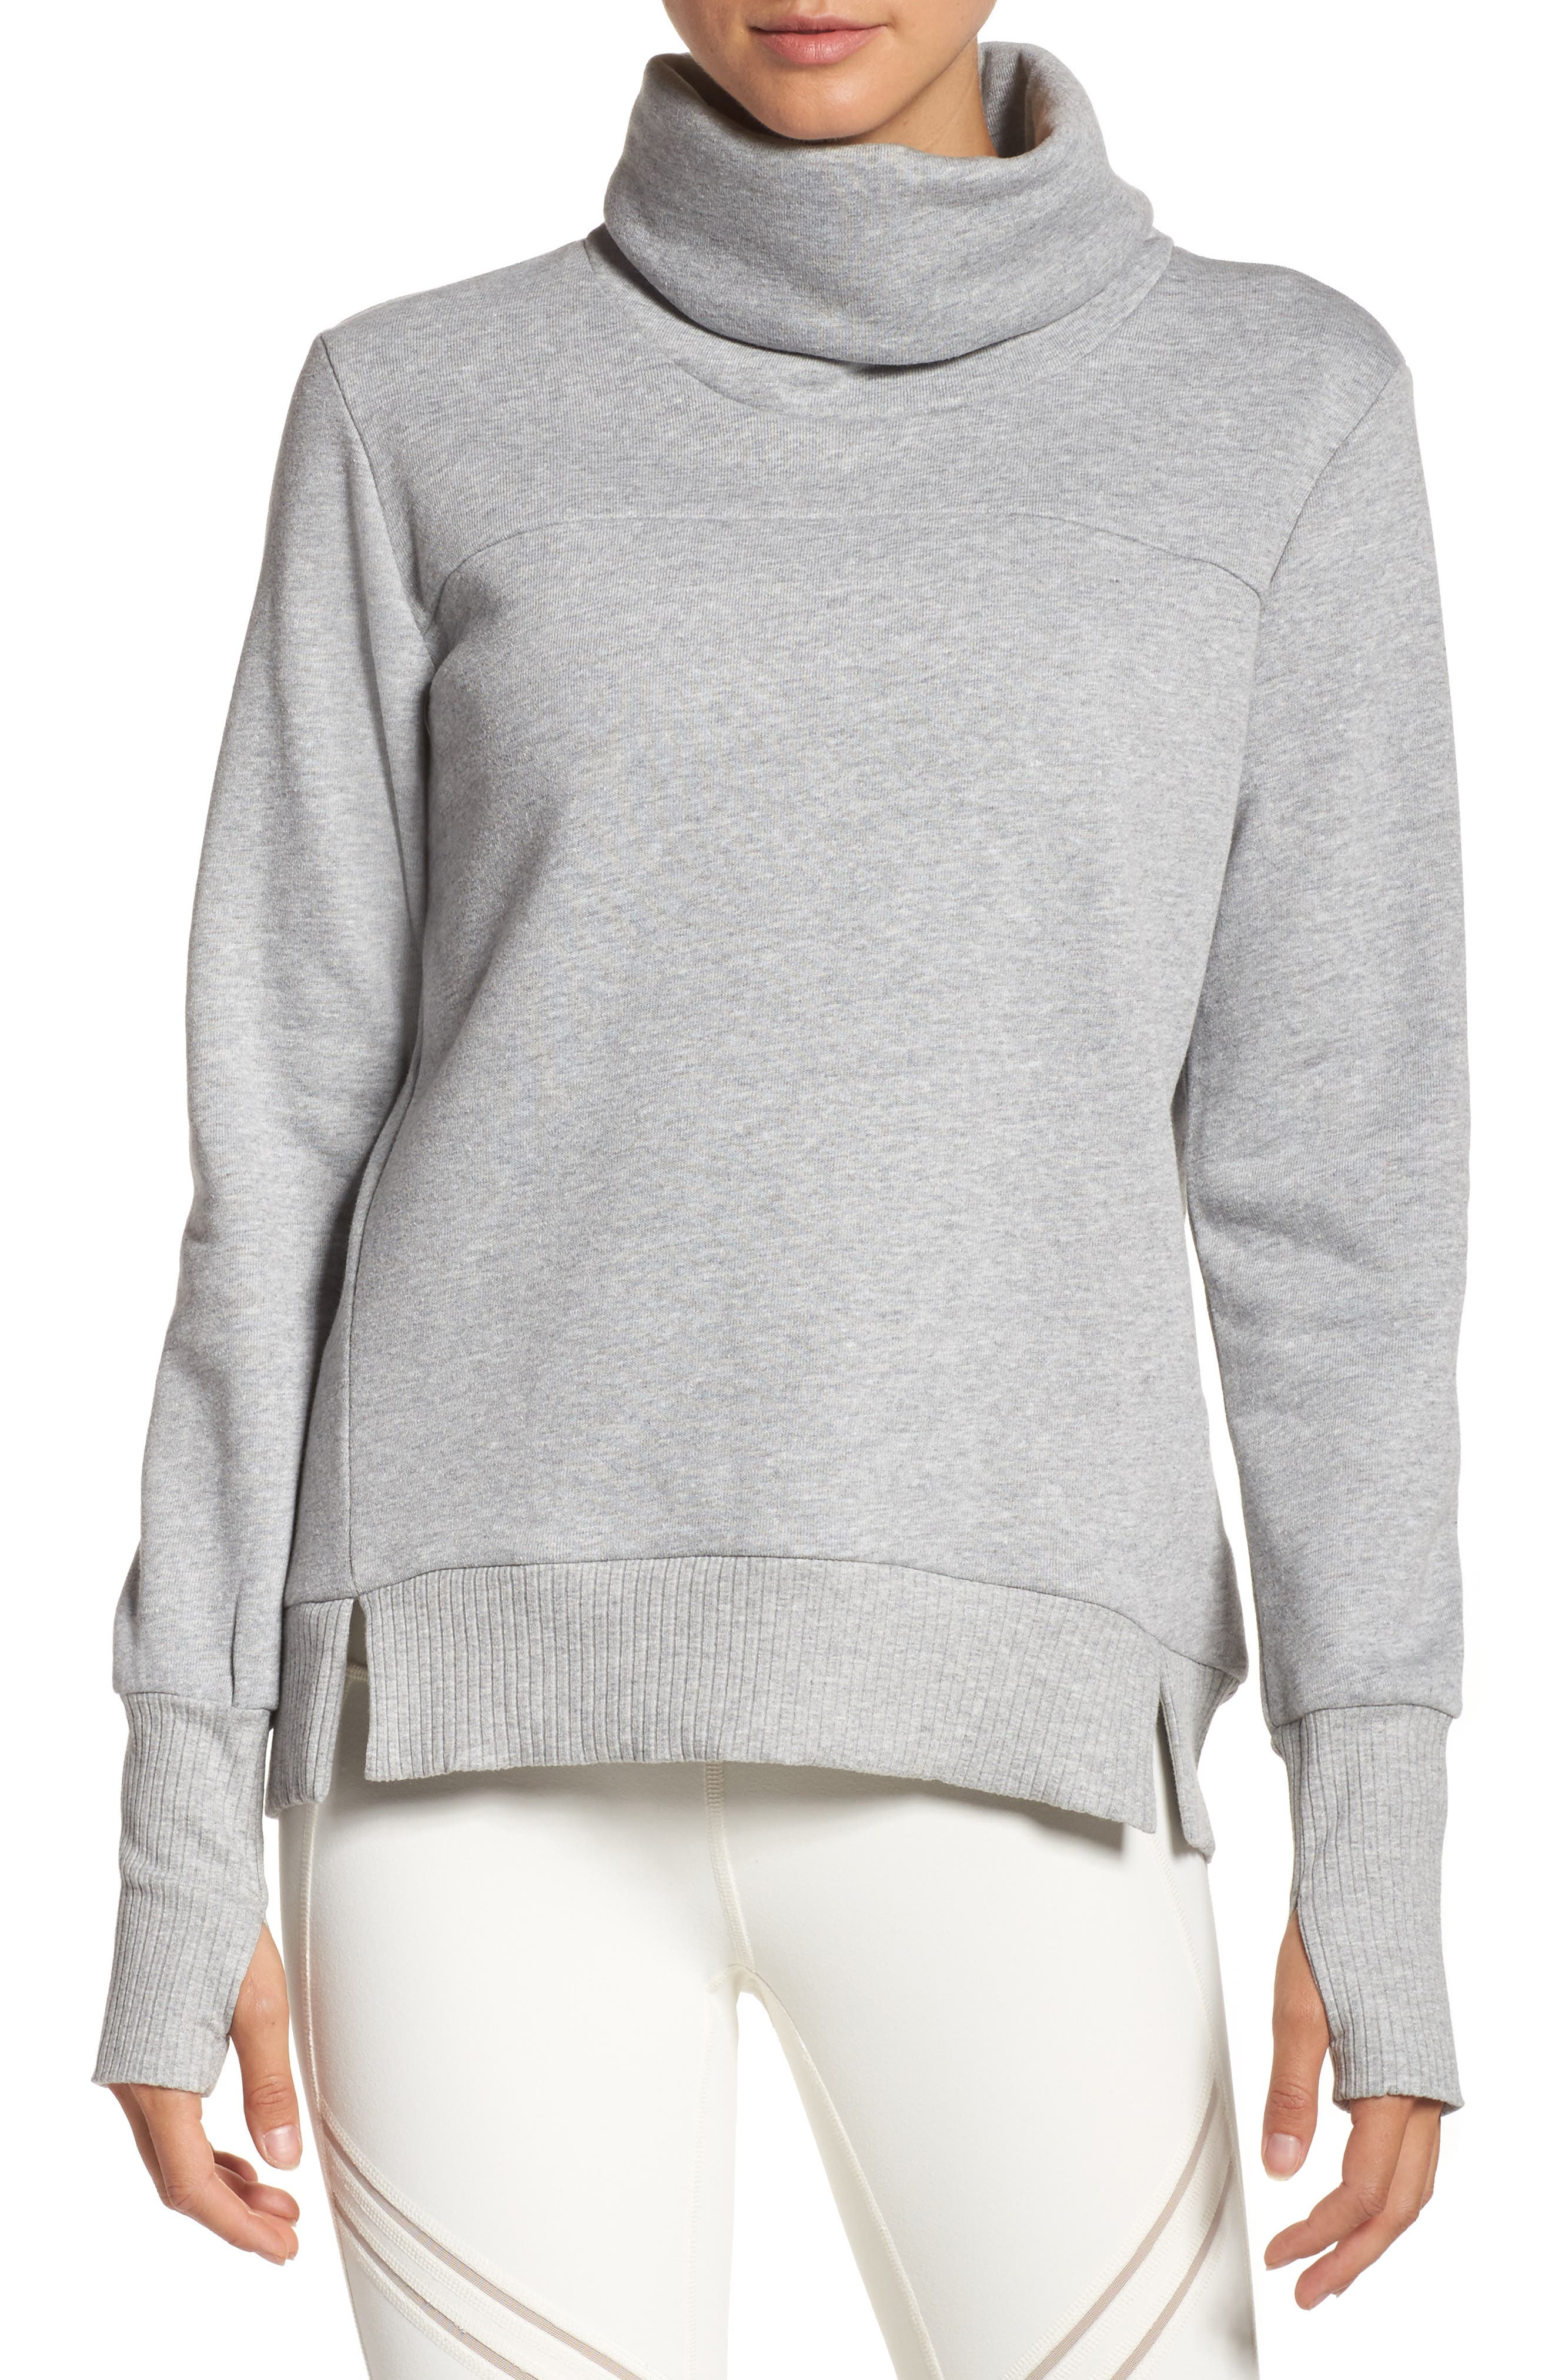 Alo 'Haze' Funnel Neck Sweatshirt